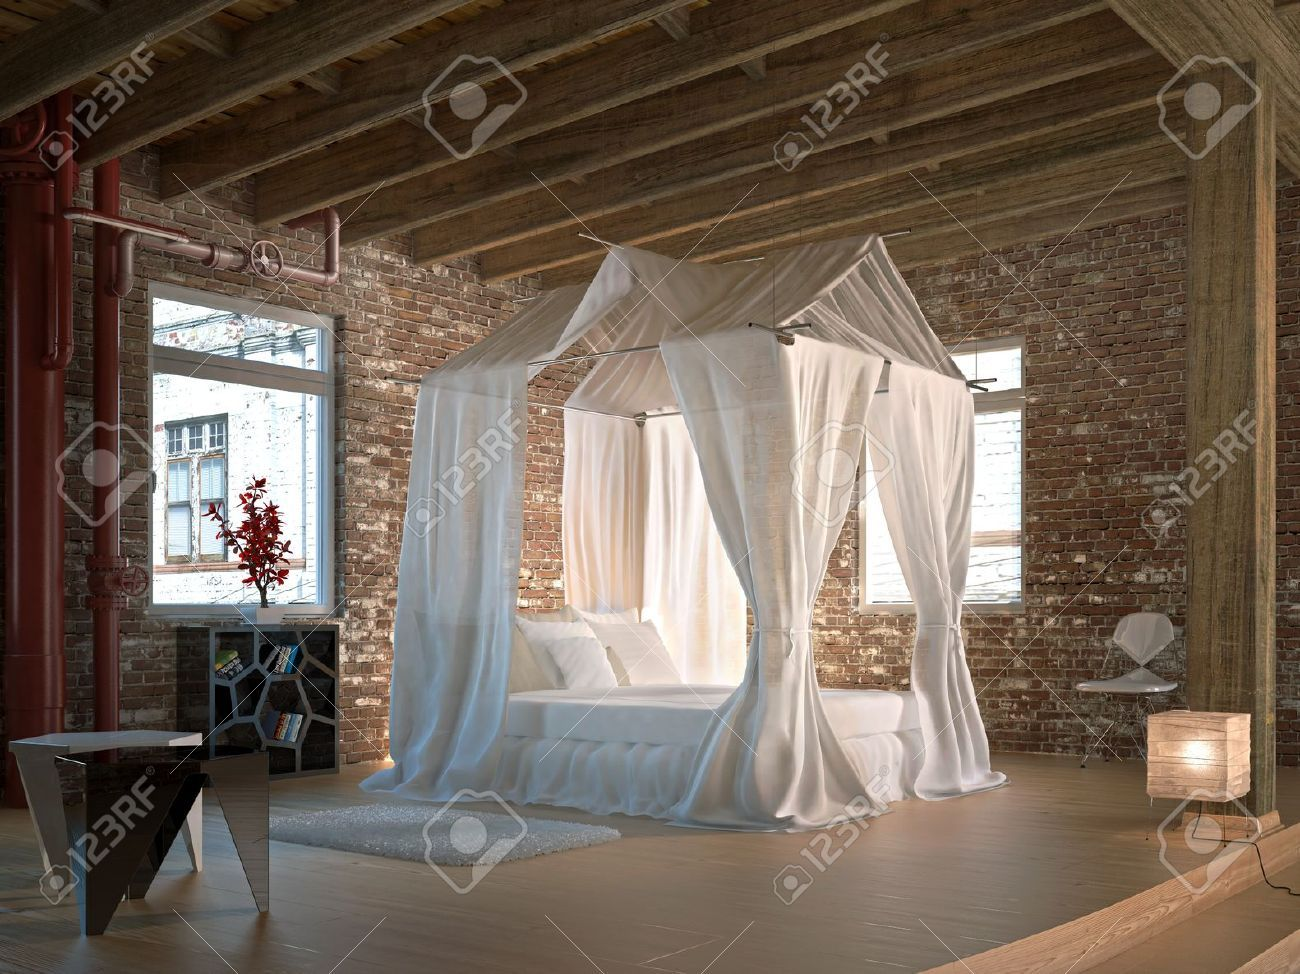 Luxury Poster Beds luxury loft bedroom, with four poster bed wooden floor and ceiling